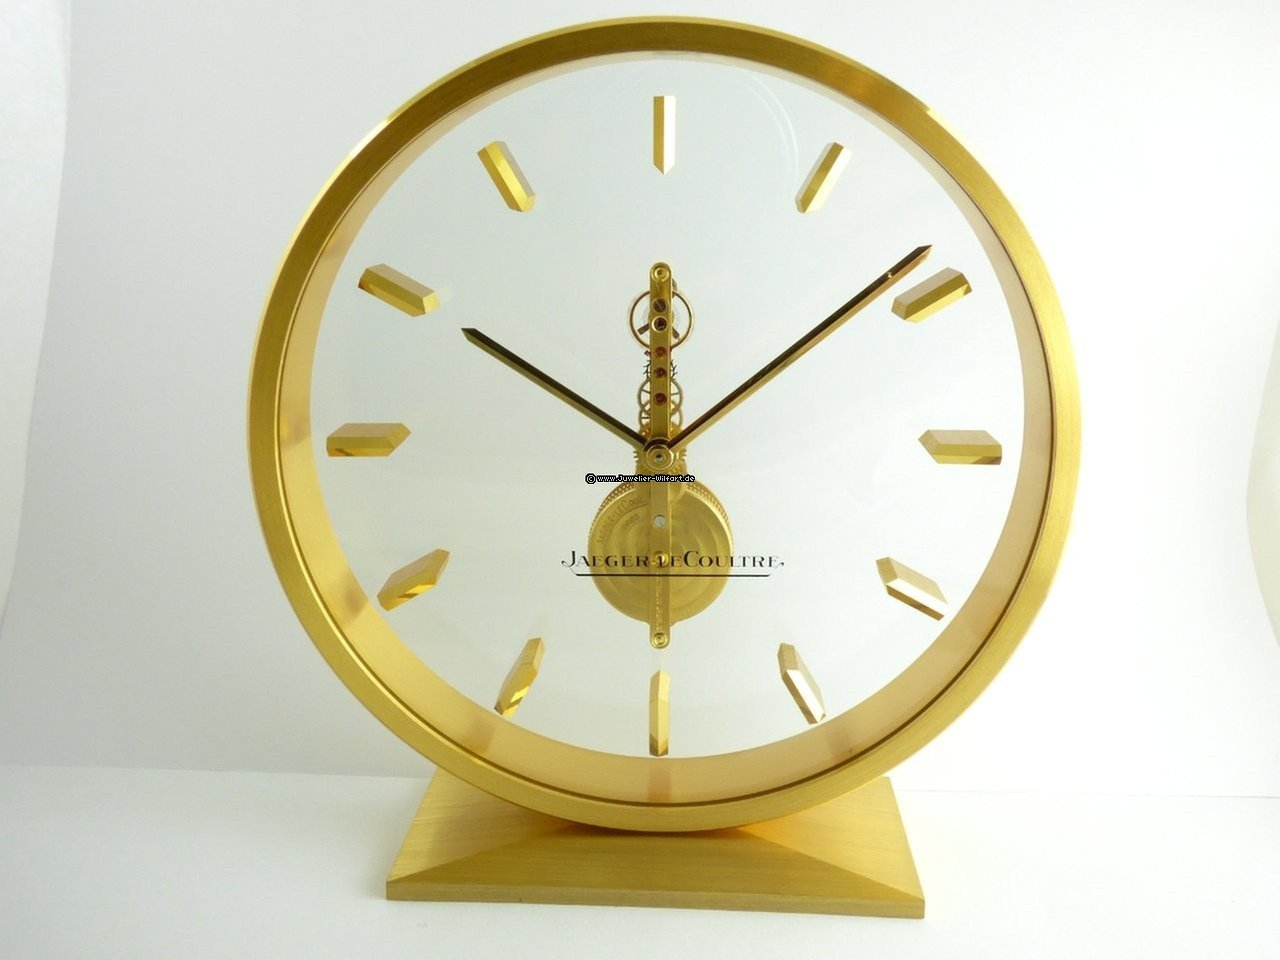 Jaeger LeCoultre Table Clock Stick Movement 8 Days For $1,945 For Sale From  A Trusted Seller On Chrono24